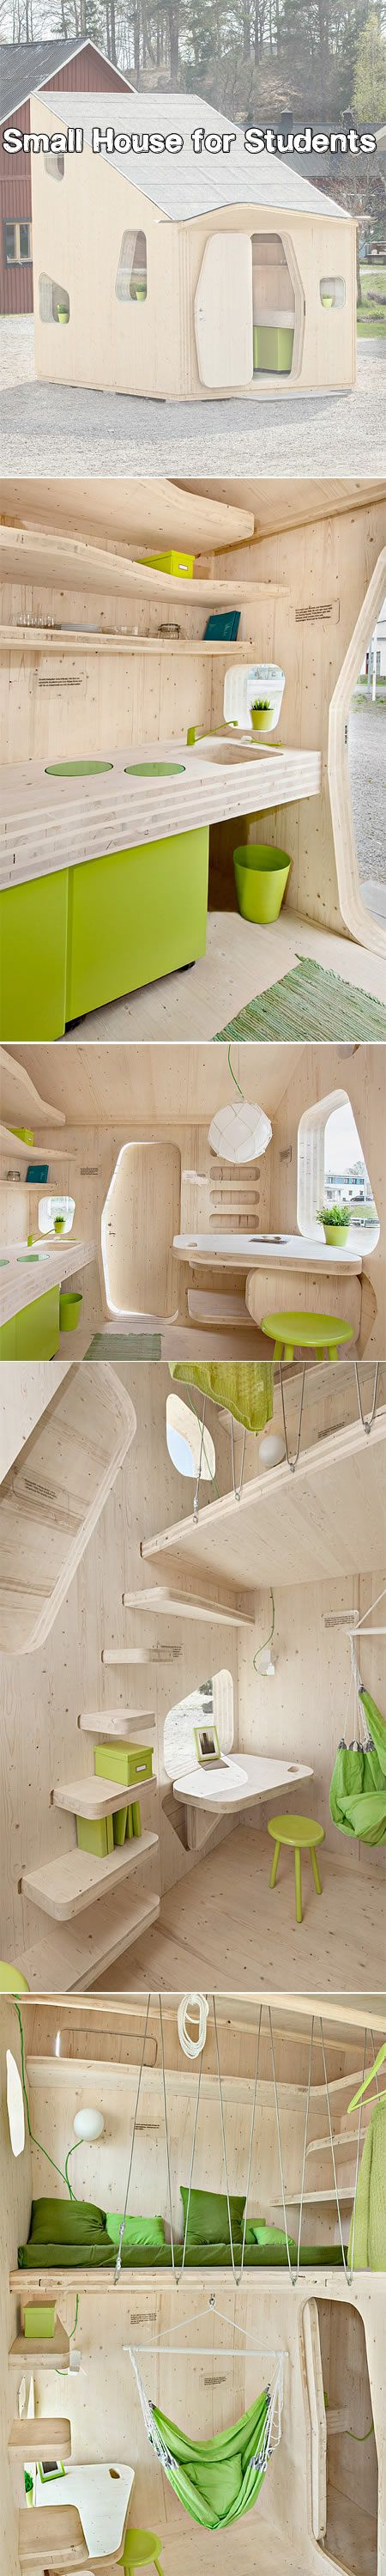 Cool and small house for students.